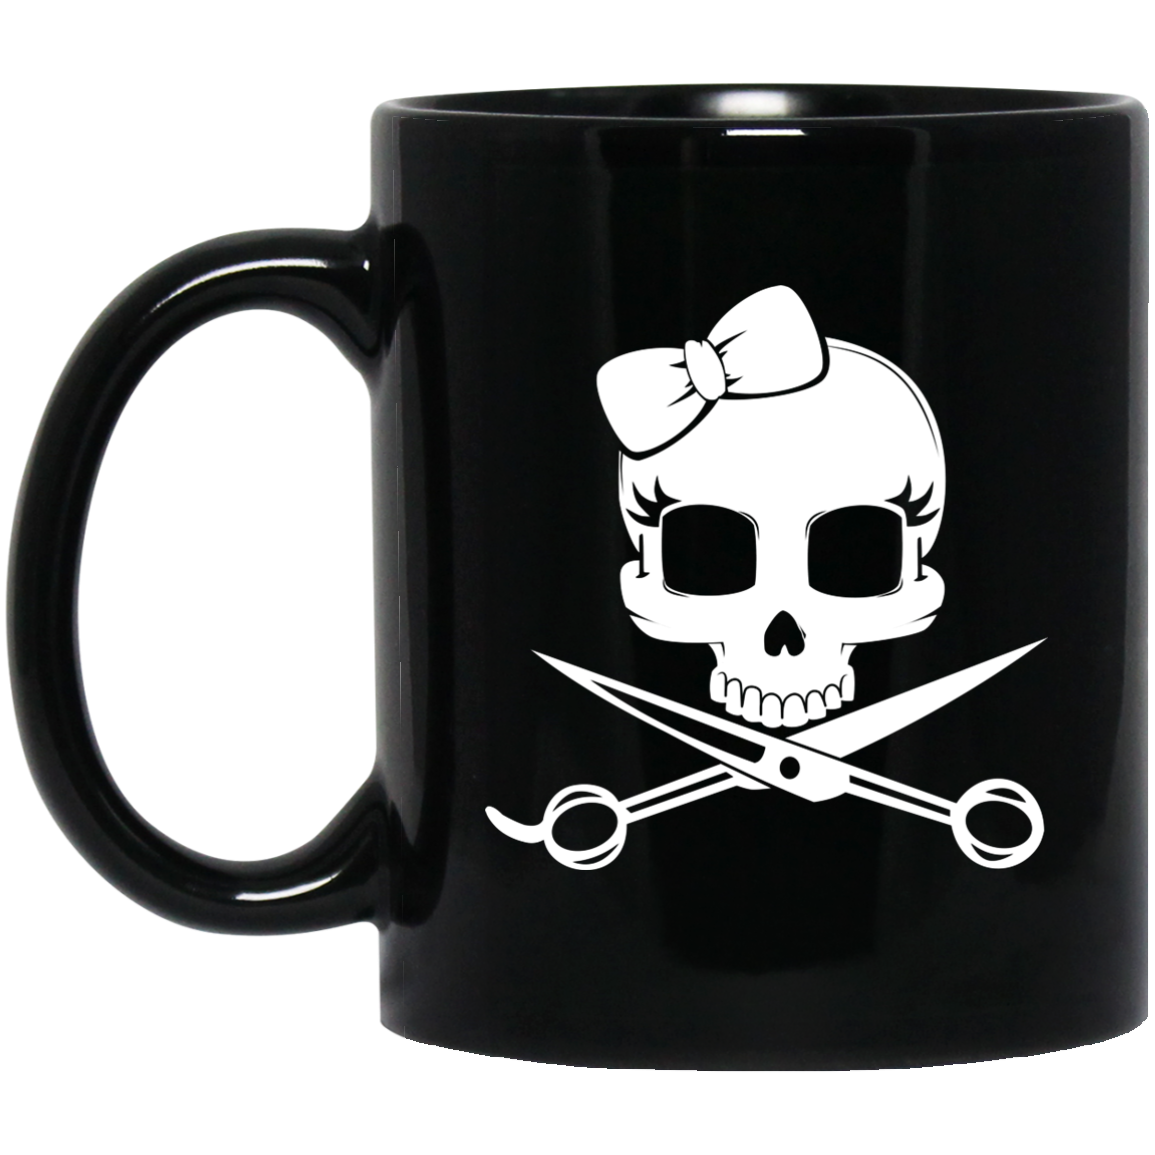 Crossbones Hairstylist Coffee Mug